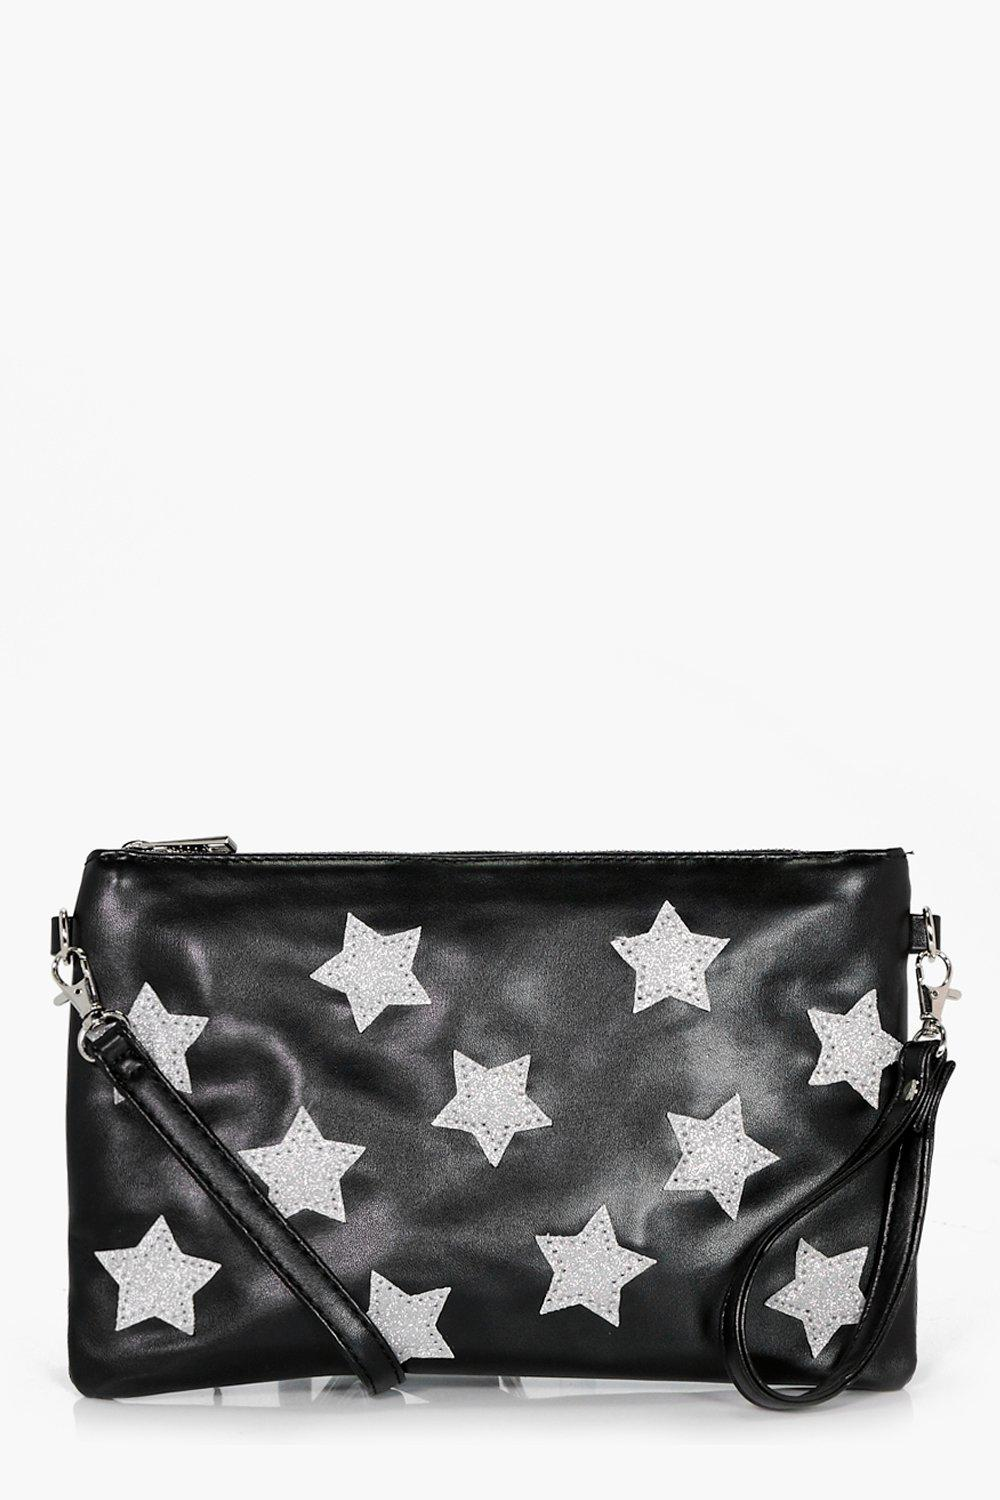 All Over Star Cross Body Bag - black - Florence Al